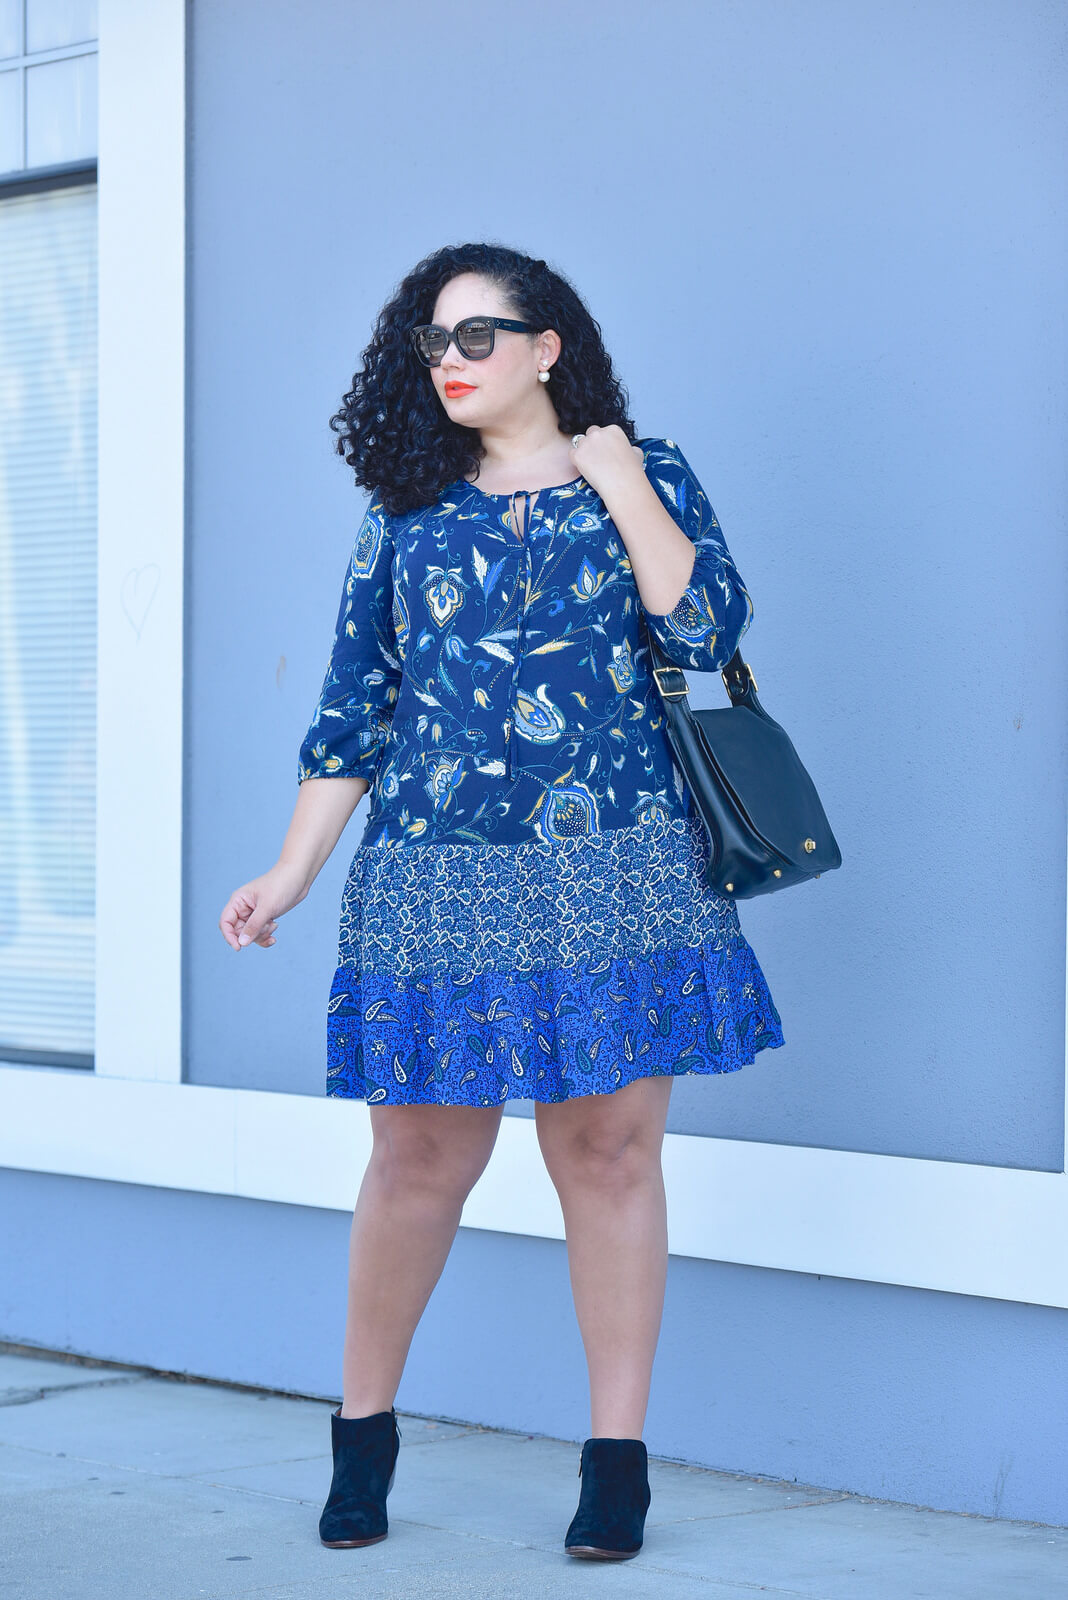 Girl With Curves featuring a Mixed Print Dress (plus size), Suede Booties, Coach Bag for fall.